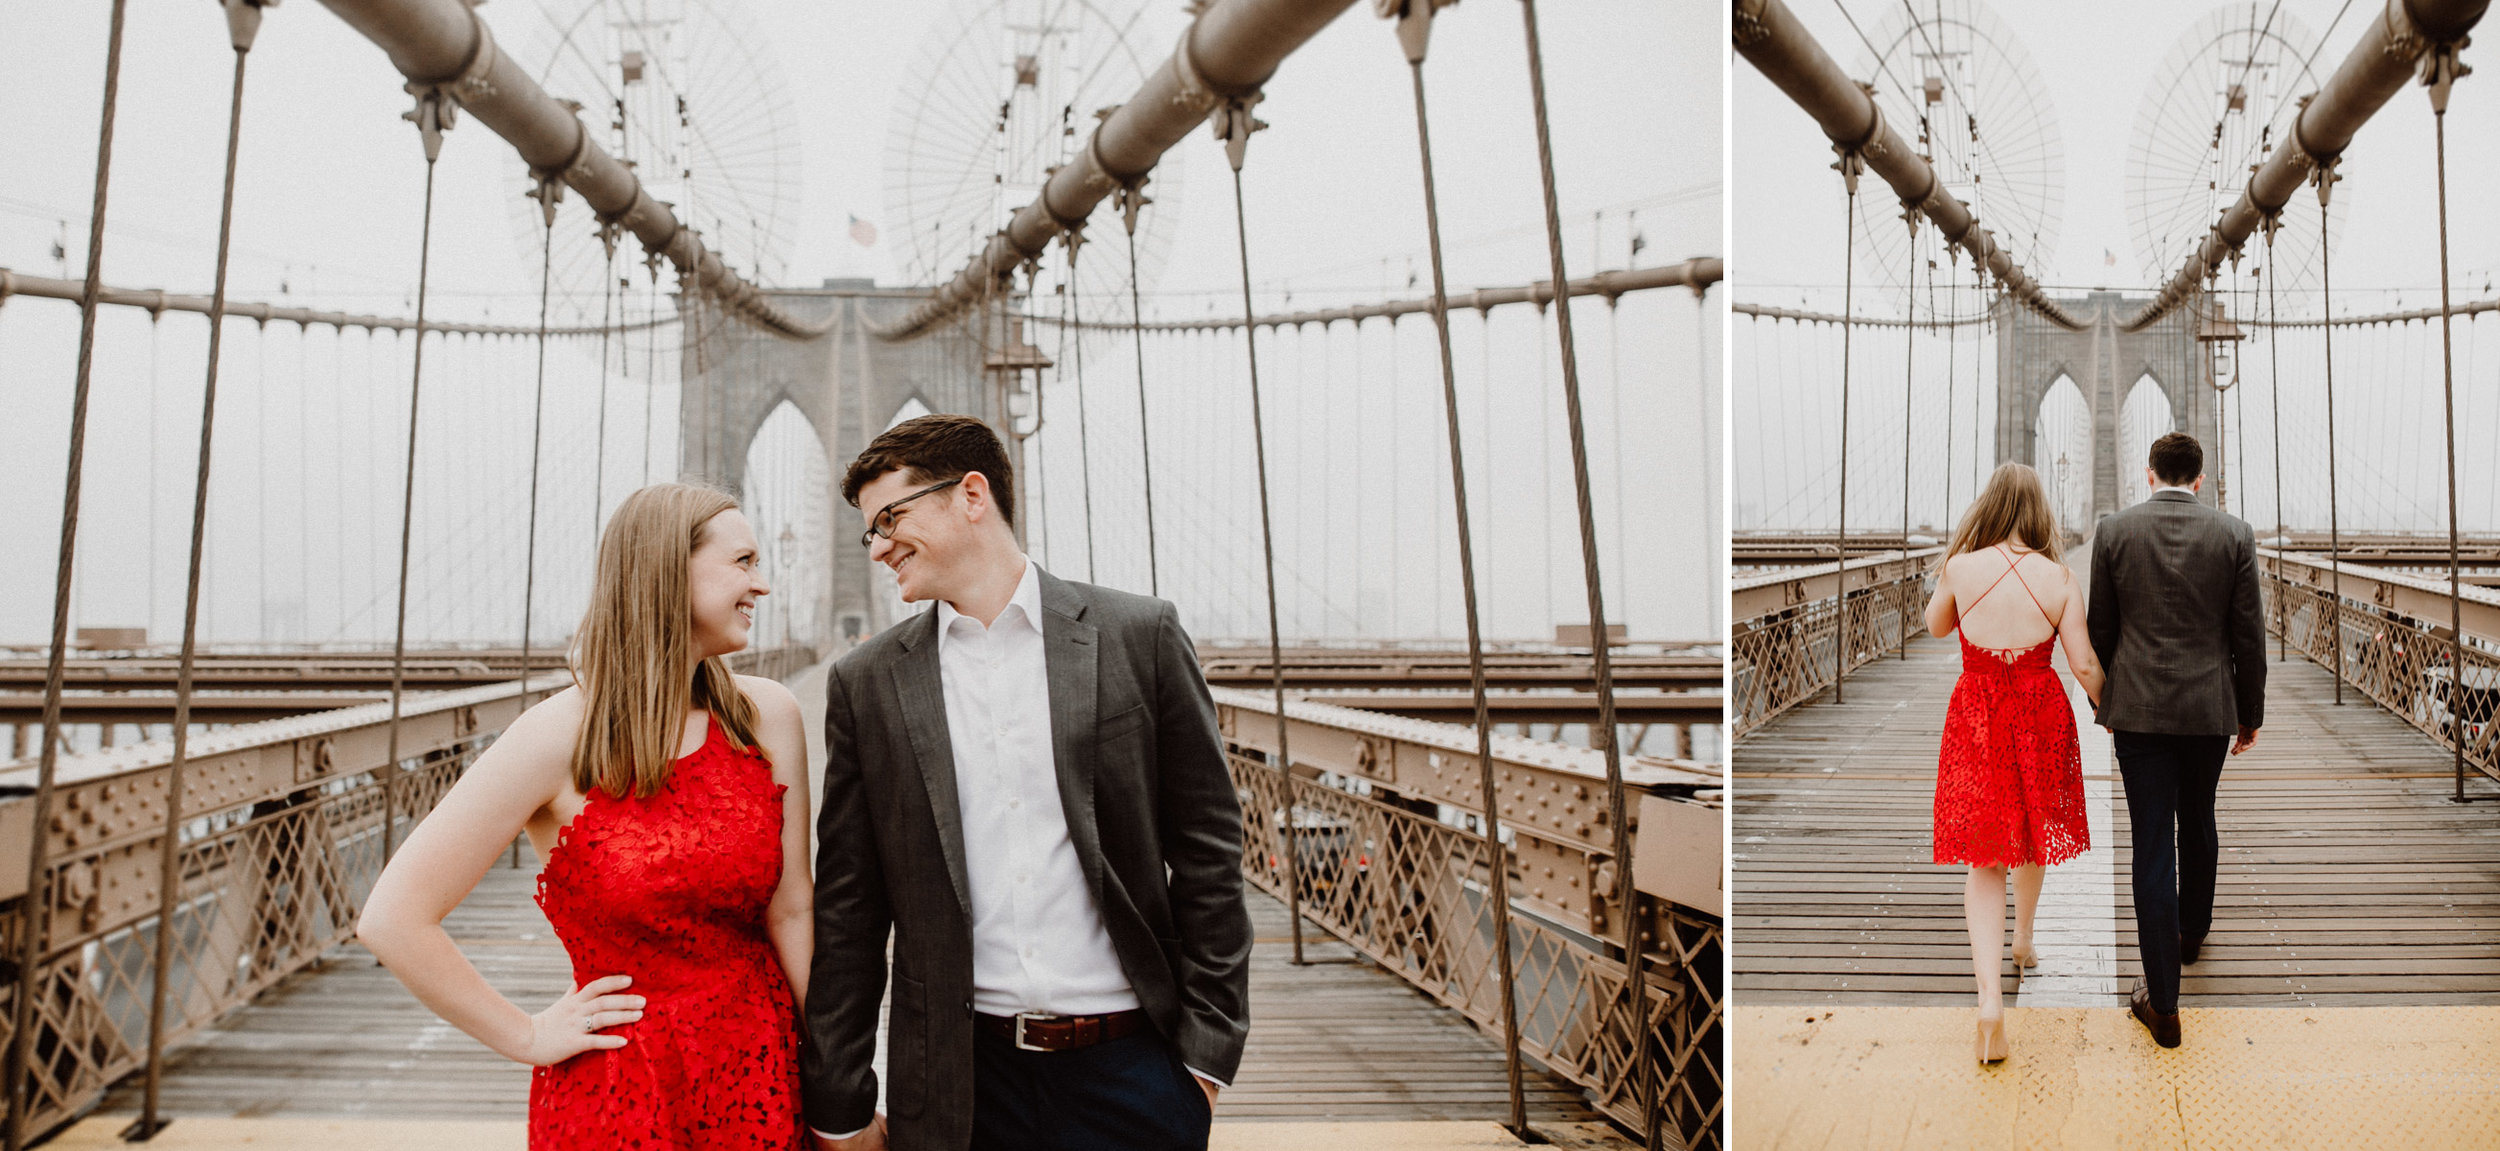 brooklyn-bridge-engagement-photos-1.jpg